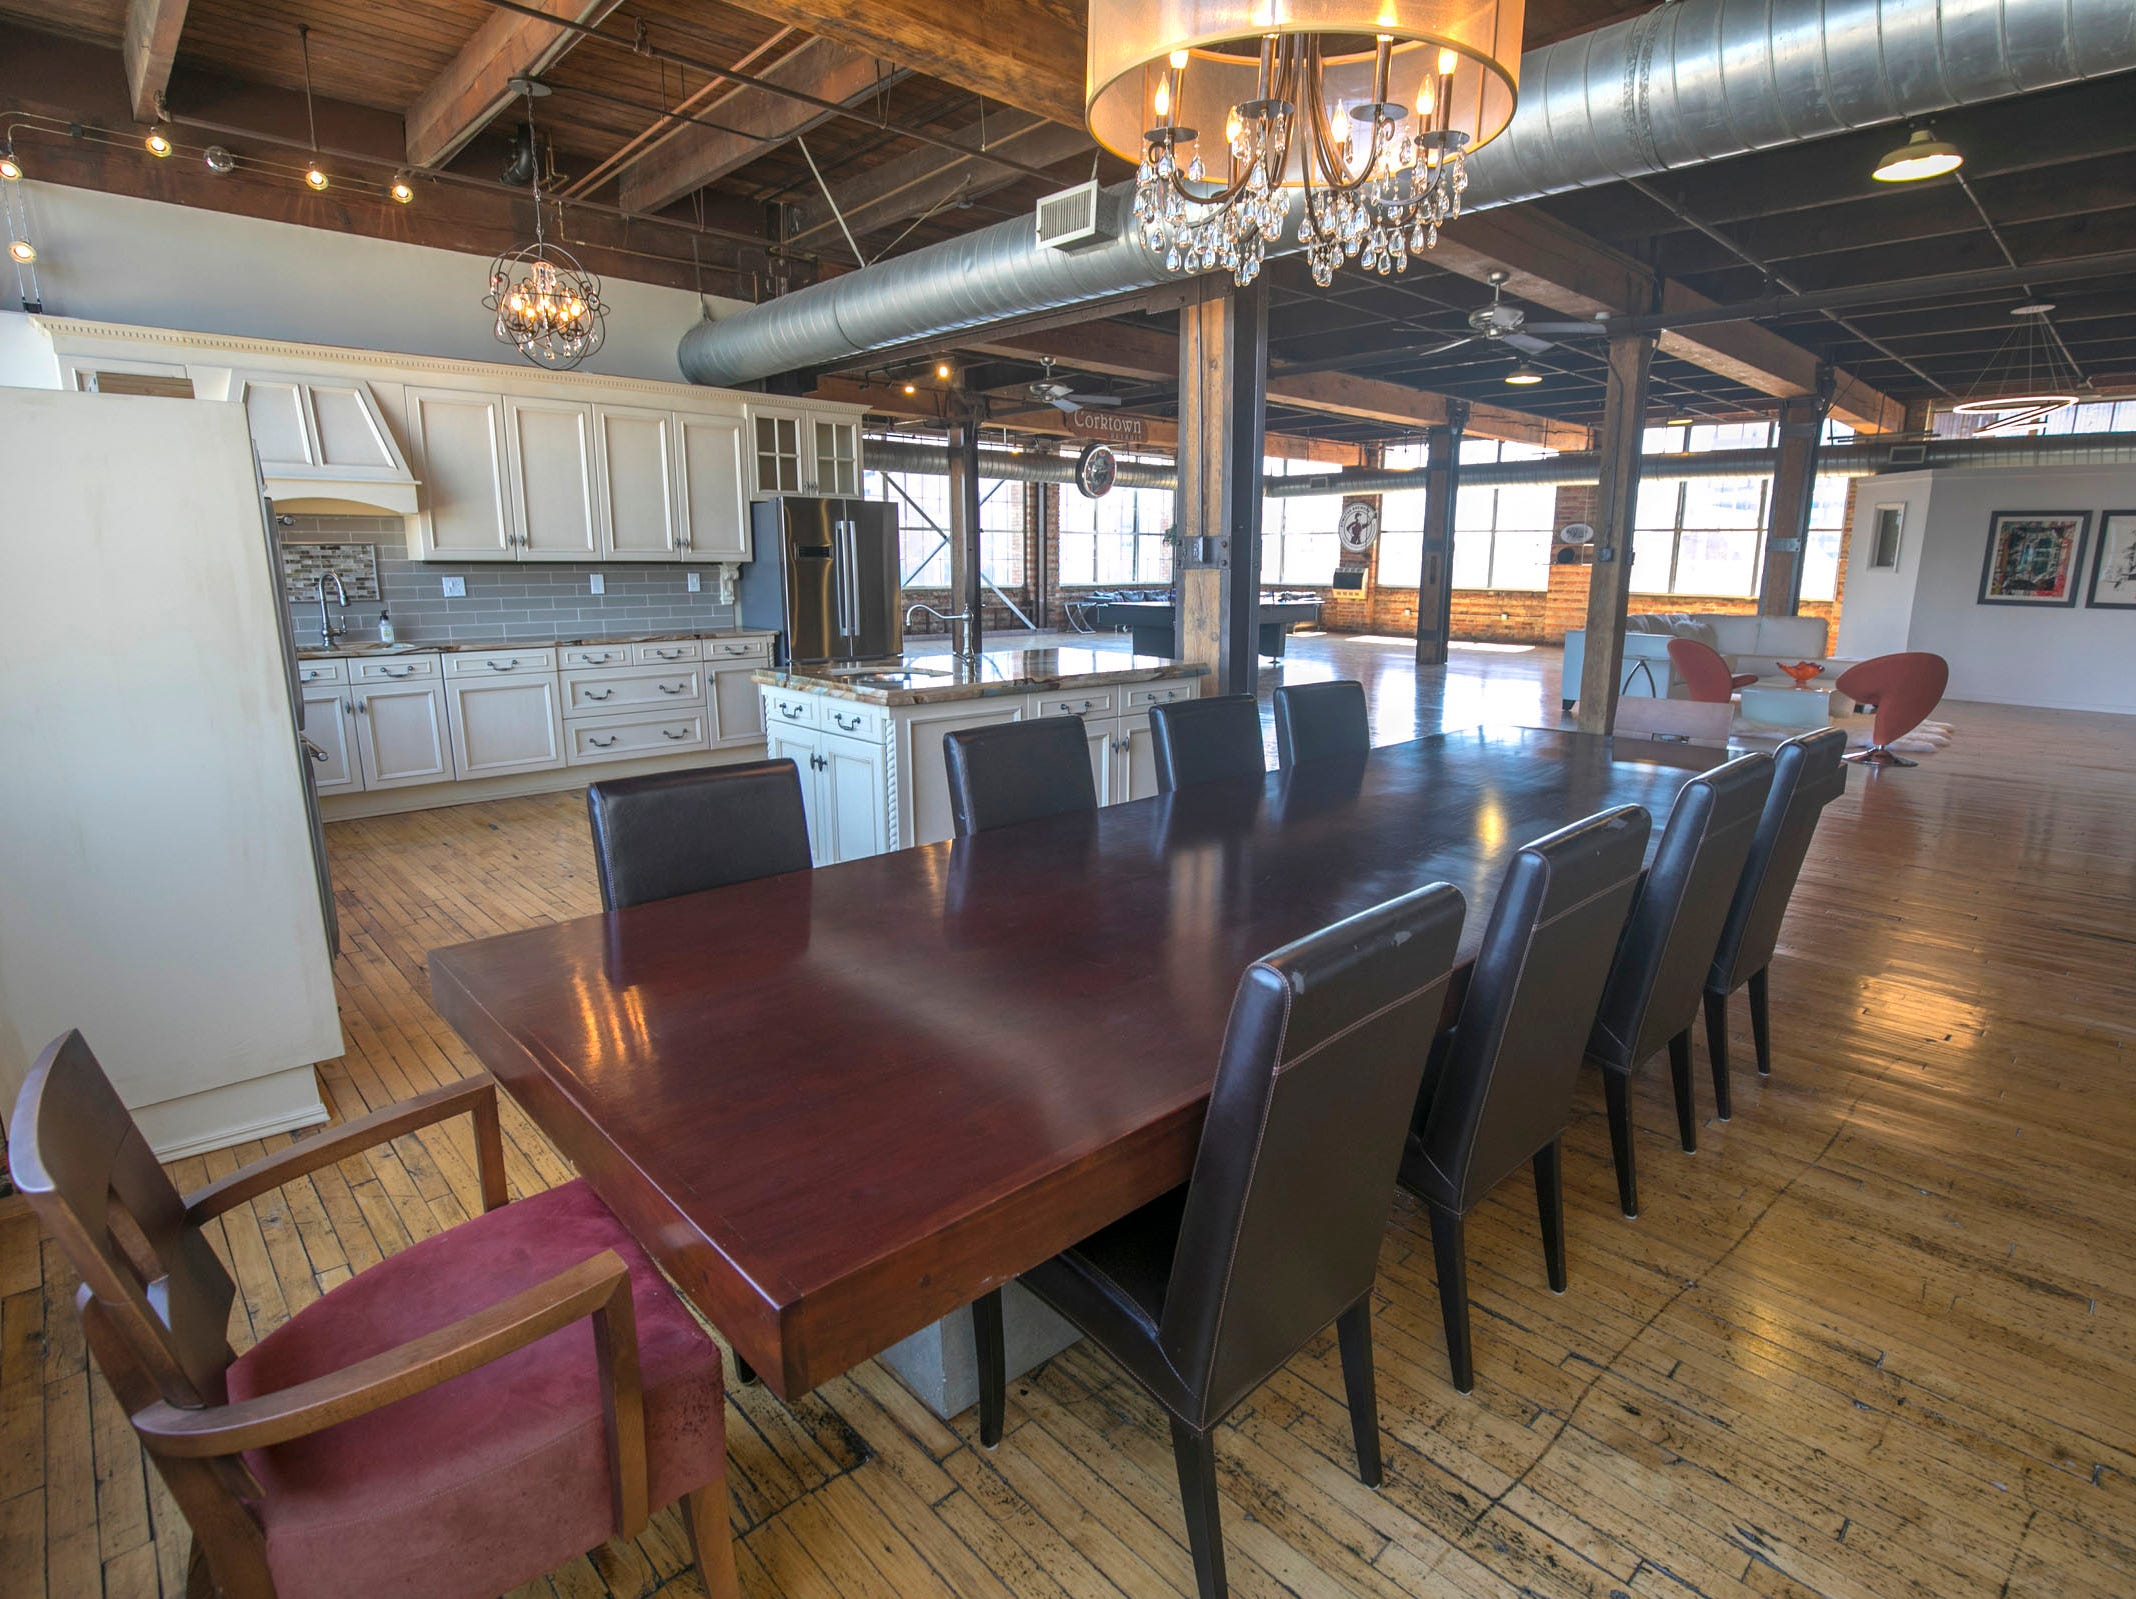 The kitchen and dining area face Michigan Avenue. The owners replaced overhead lighting with fixtures that are industrial, contemporary or retro.